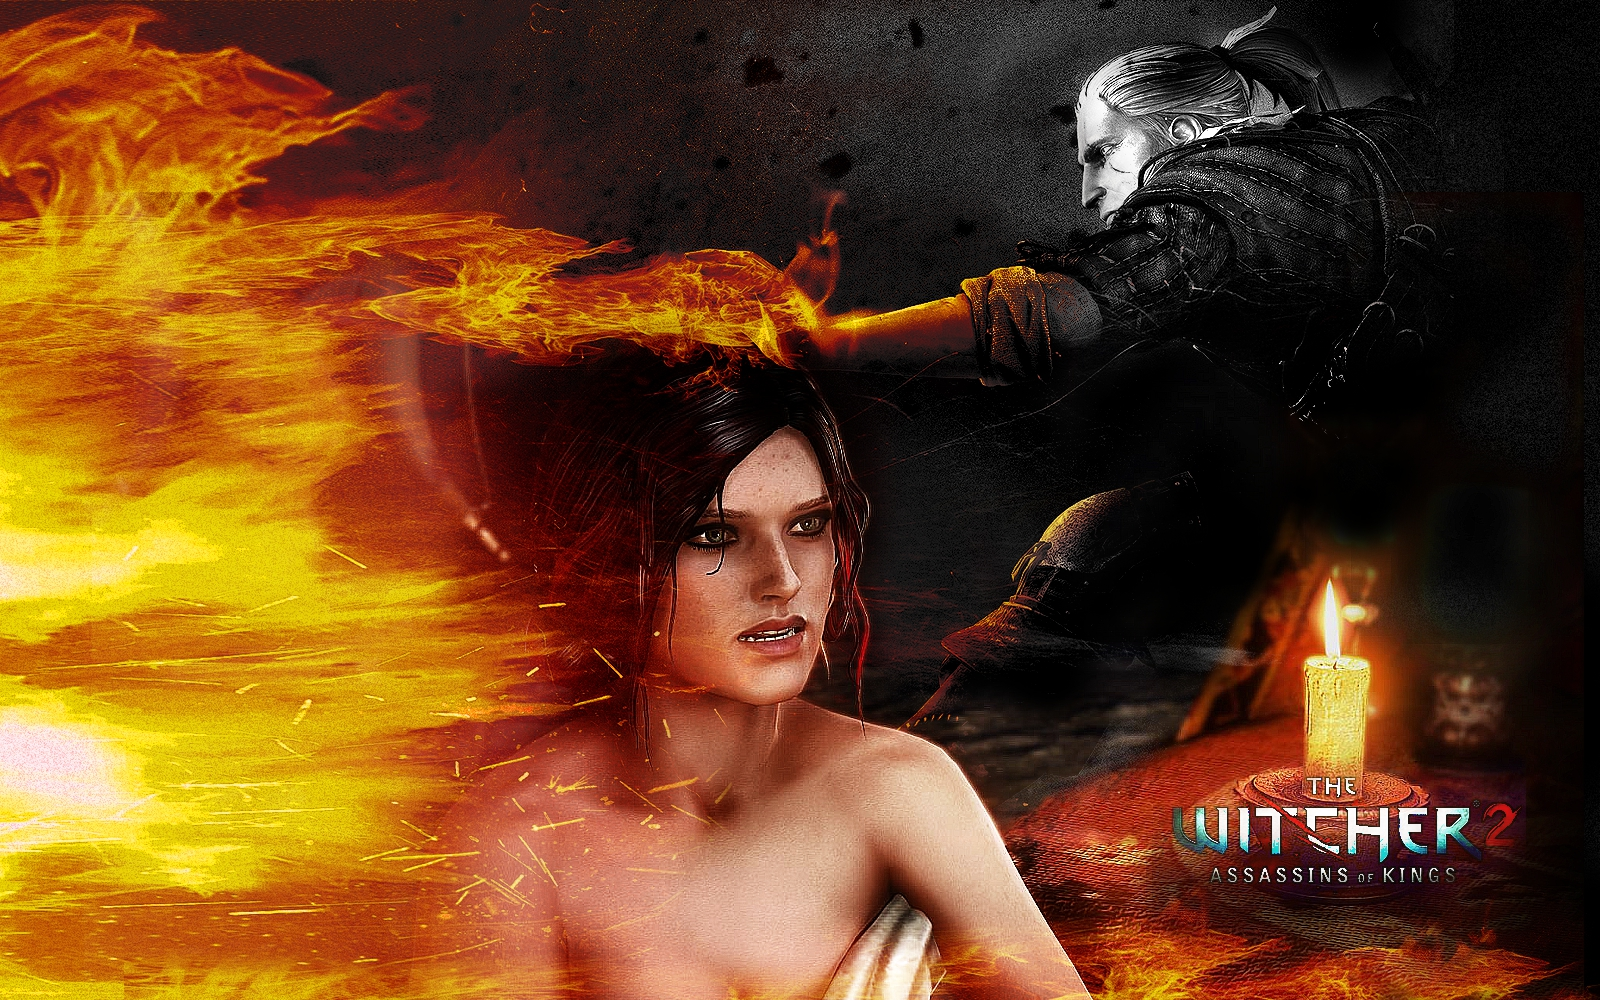 Video Game - The Witcher 2: Assassins Of Kings  - Witcher - Geralt - Triss Wallpaper